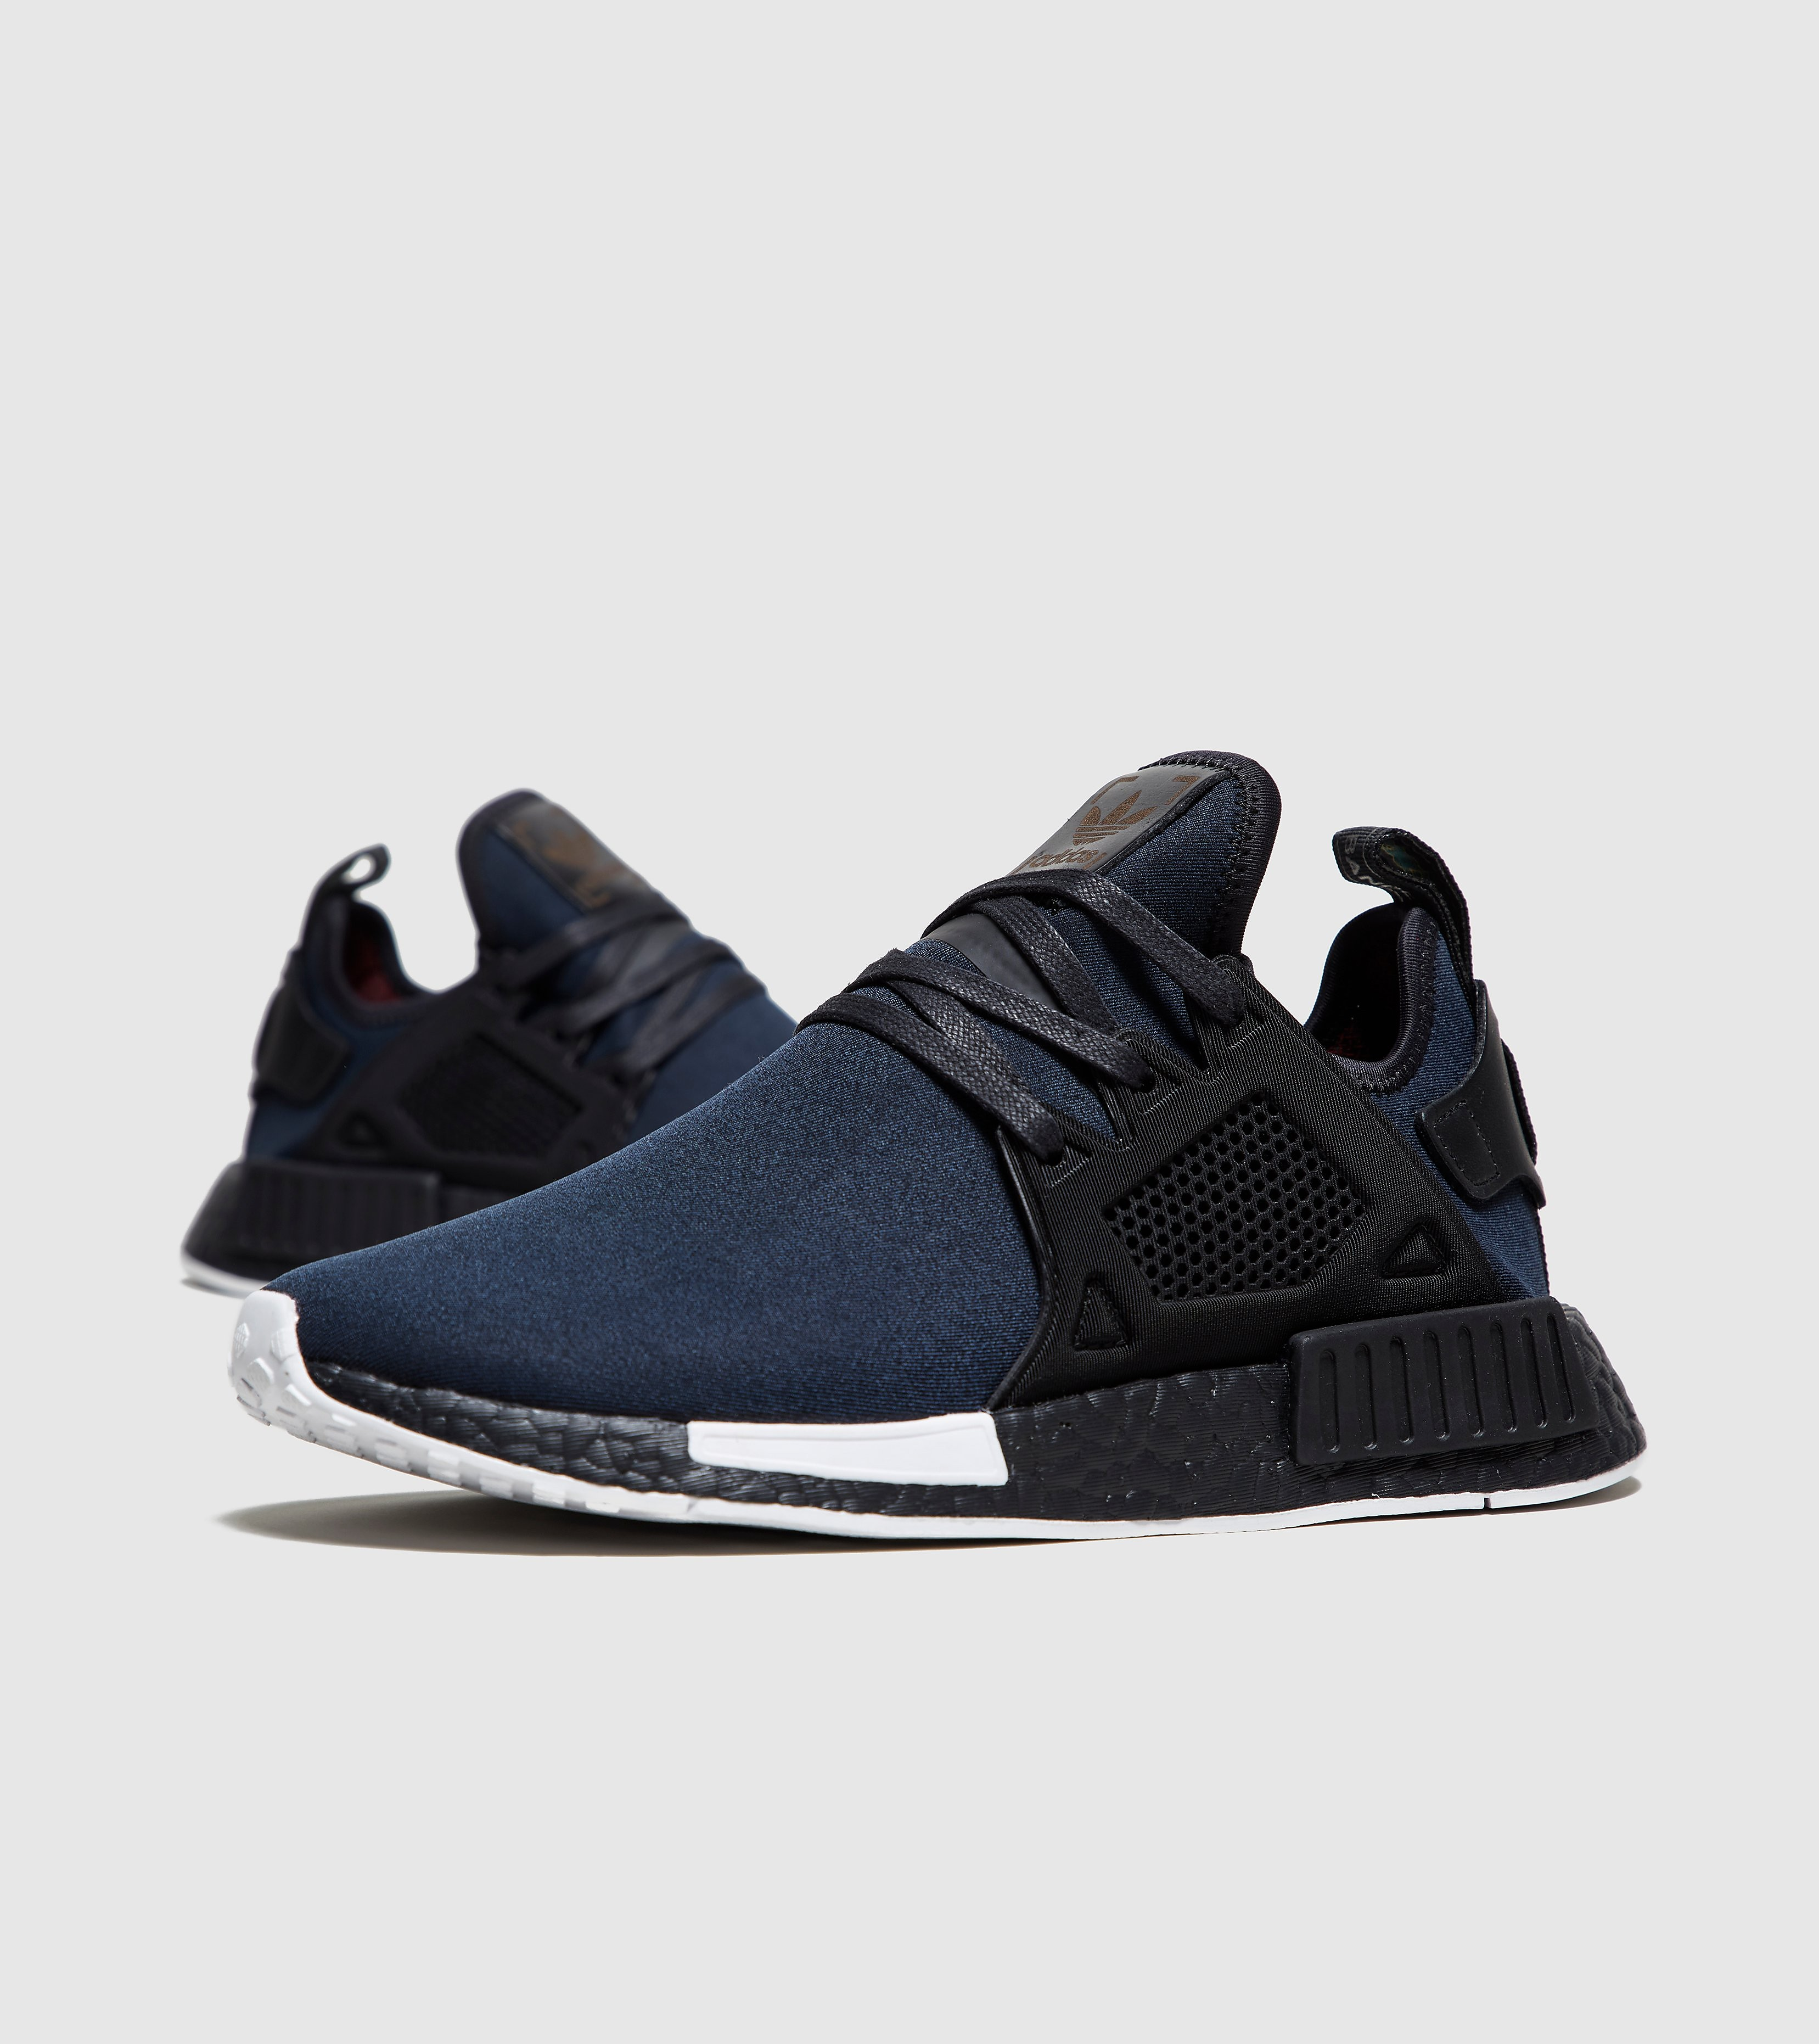 adidas Originals x size? x Henry Poole NMD_XR1